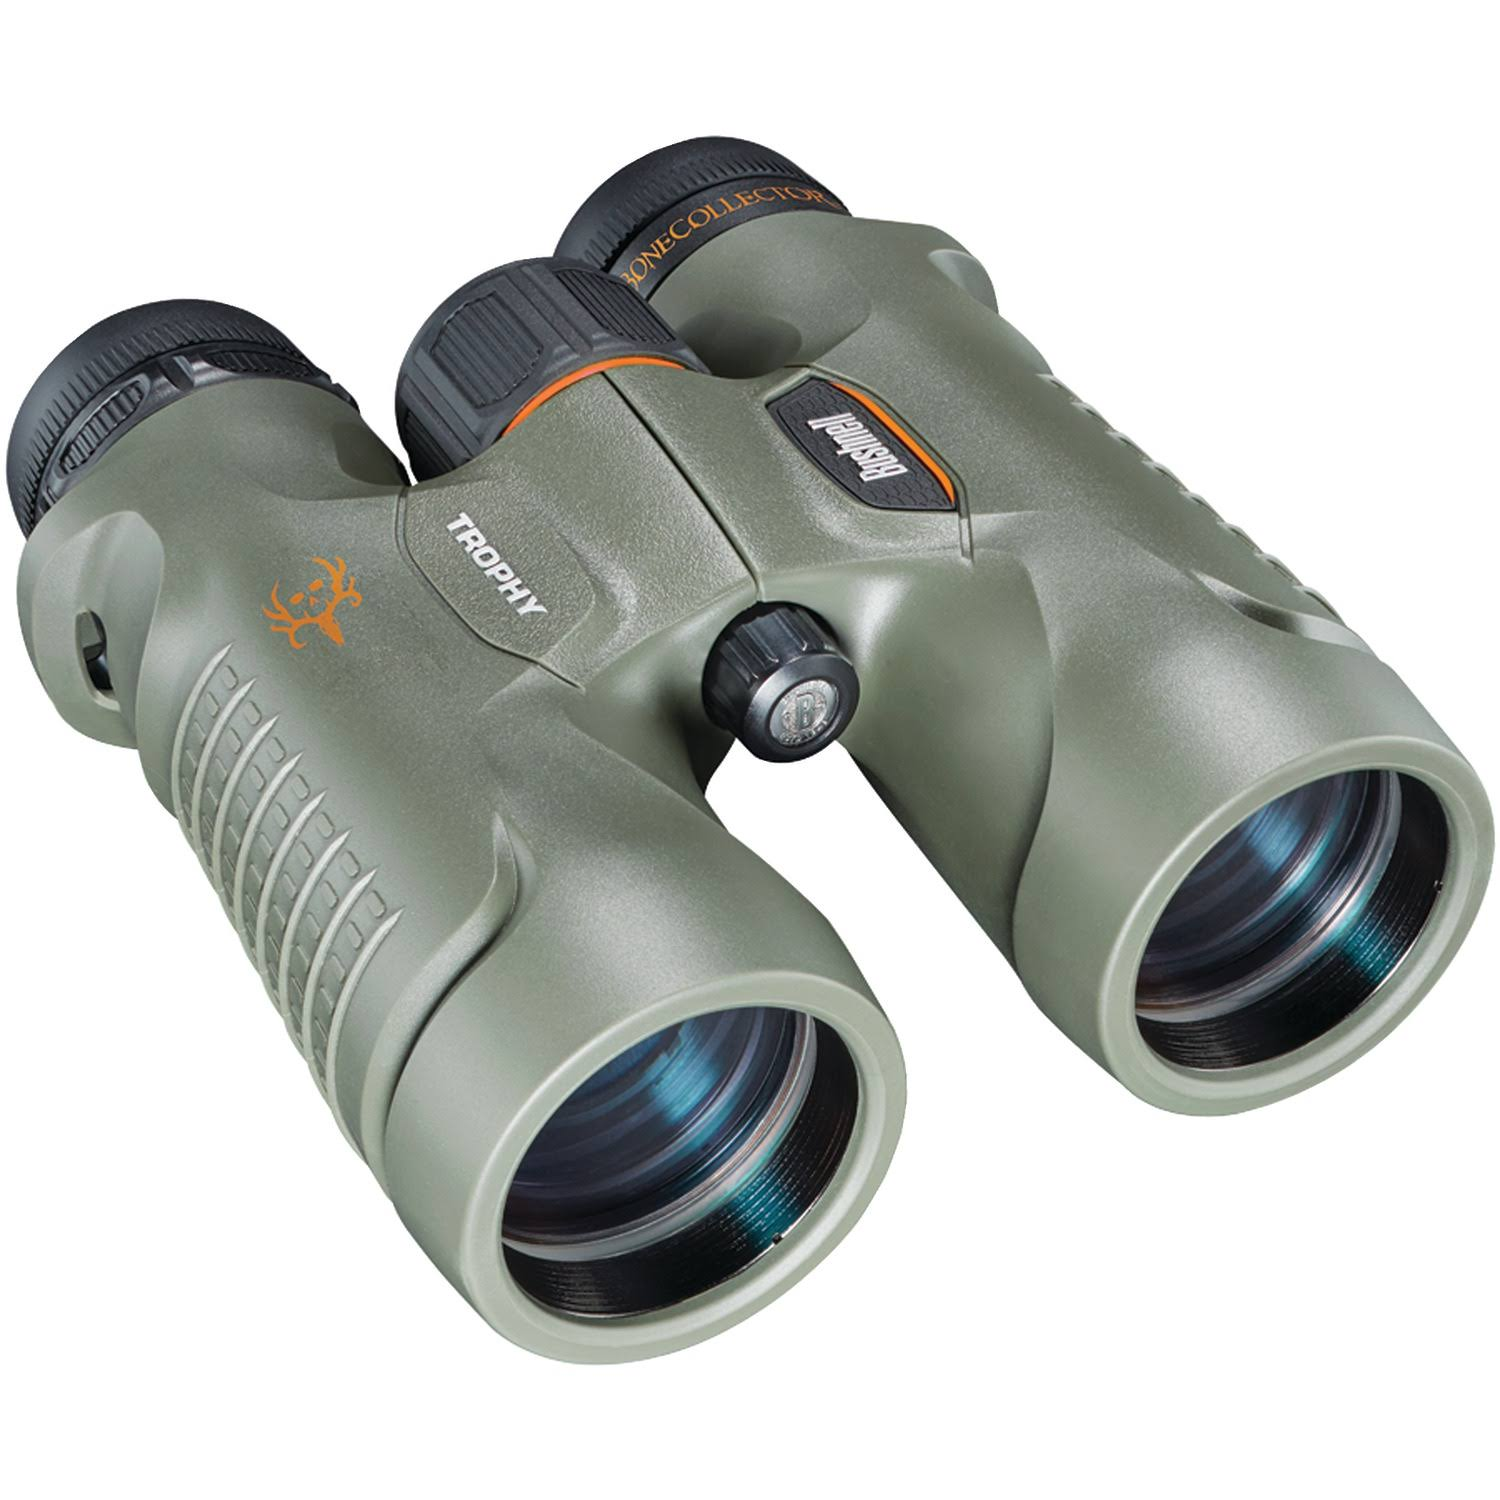 Bushnell Trophy Bone Collector Binoculars - 10mm x 42mm, Green, Roof Prism